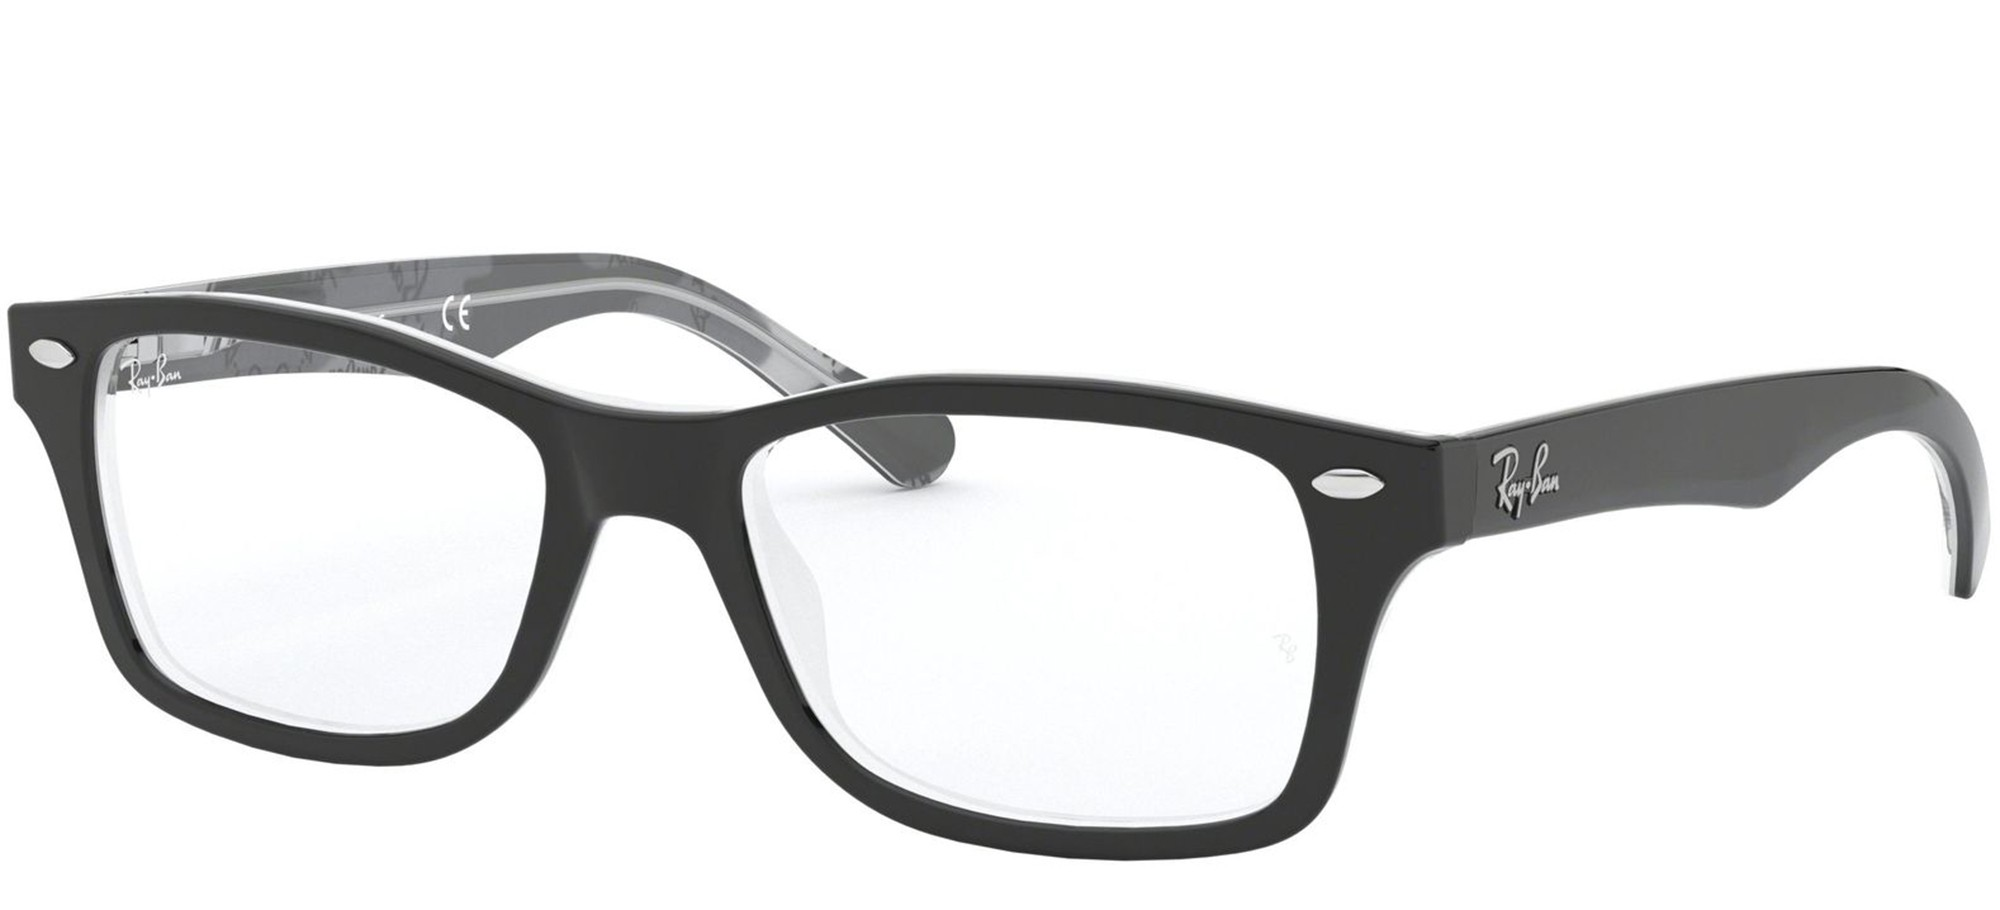 Ray-Ban Junior eyeglasses NEW WAYFARER JUNIOR RY 1531